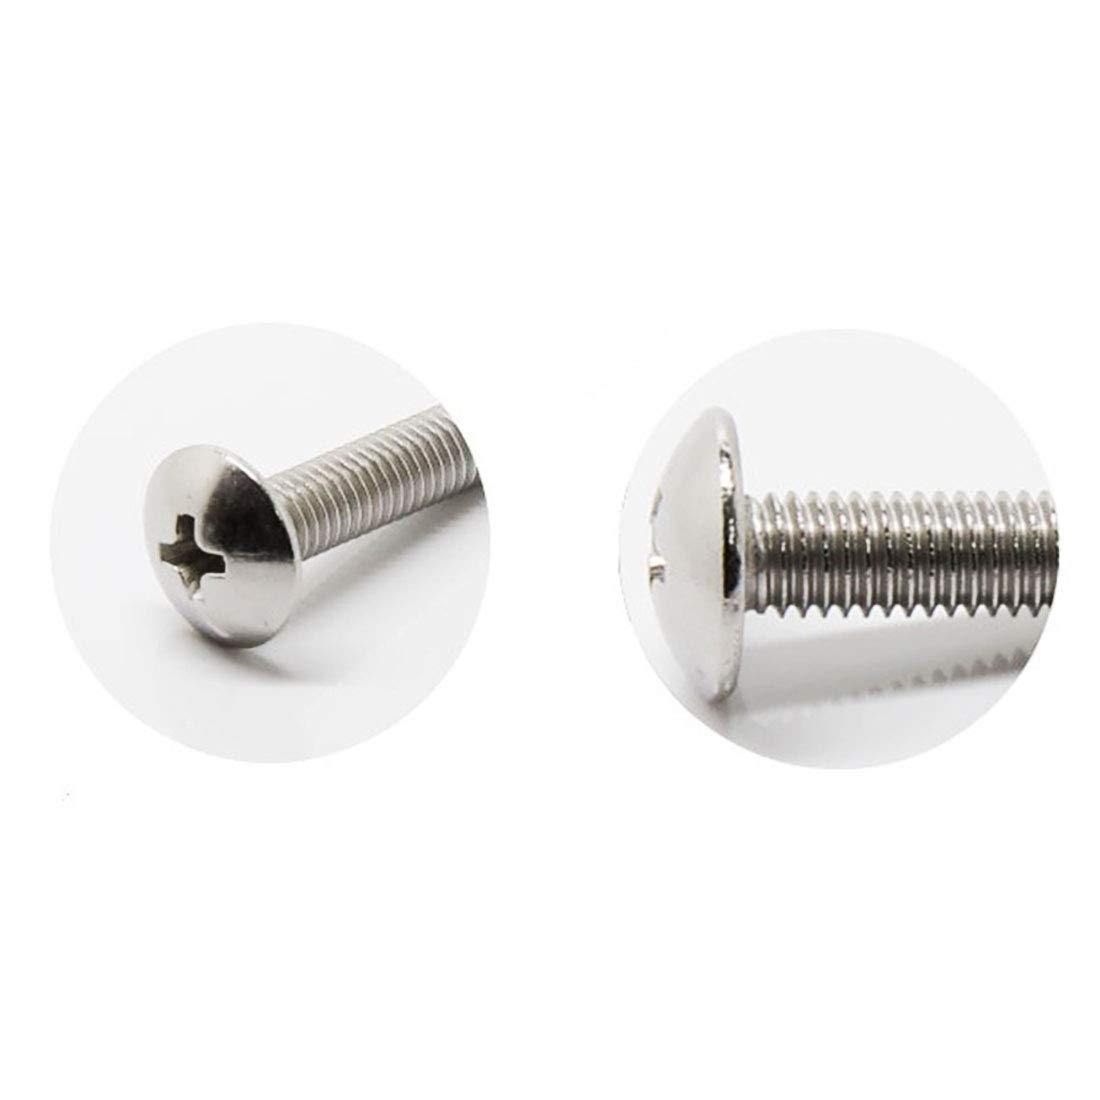 TOUHIA M4x25mm 304 Stainless Steel Machine Screws Phillips Cross Head Screw for Cabinet Drawer Knob Pull Handle 50Pcs